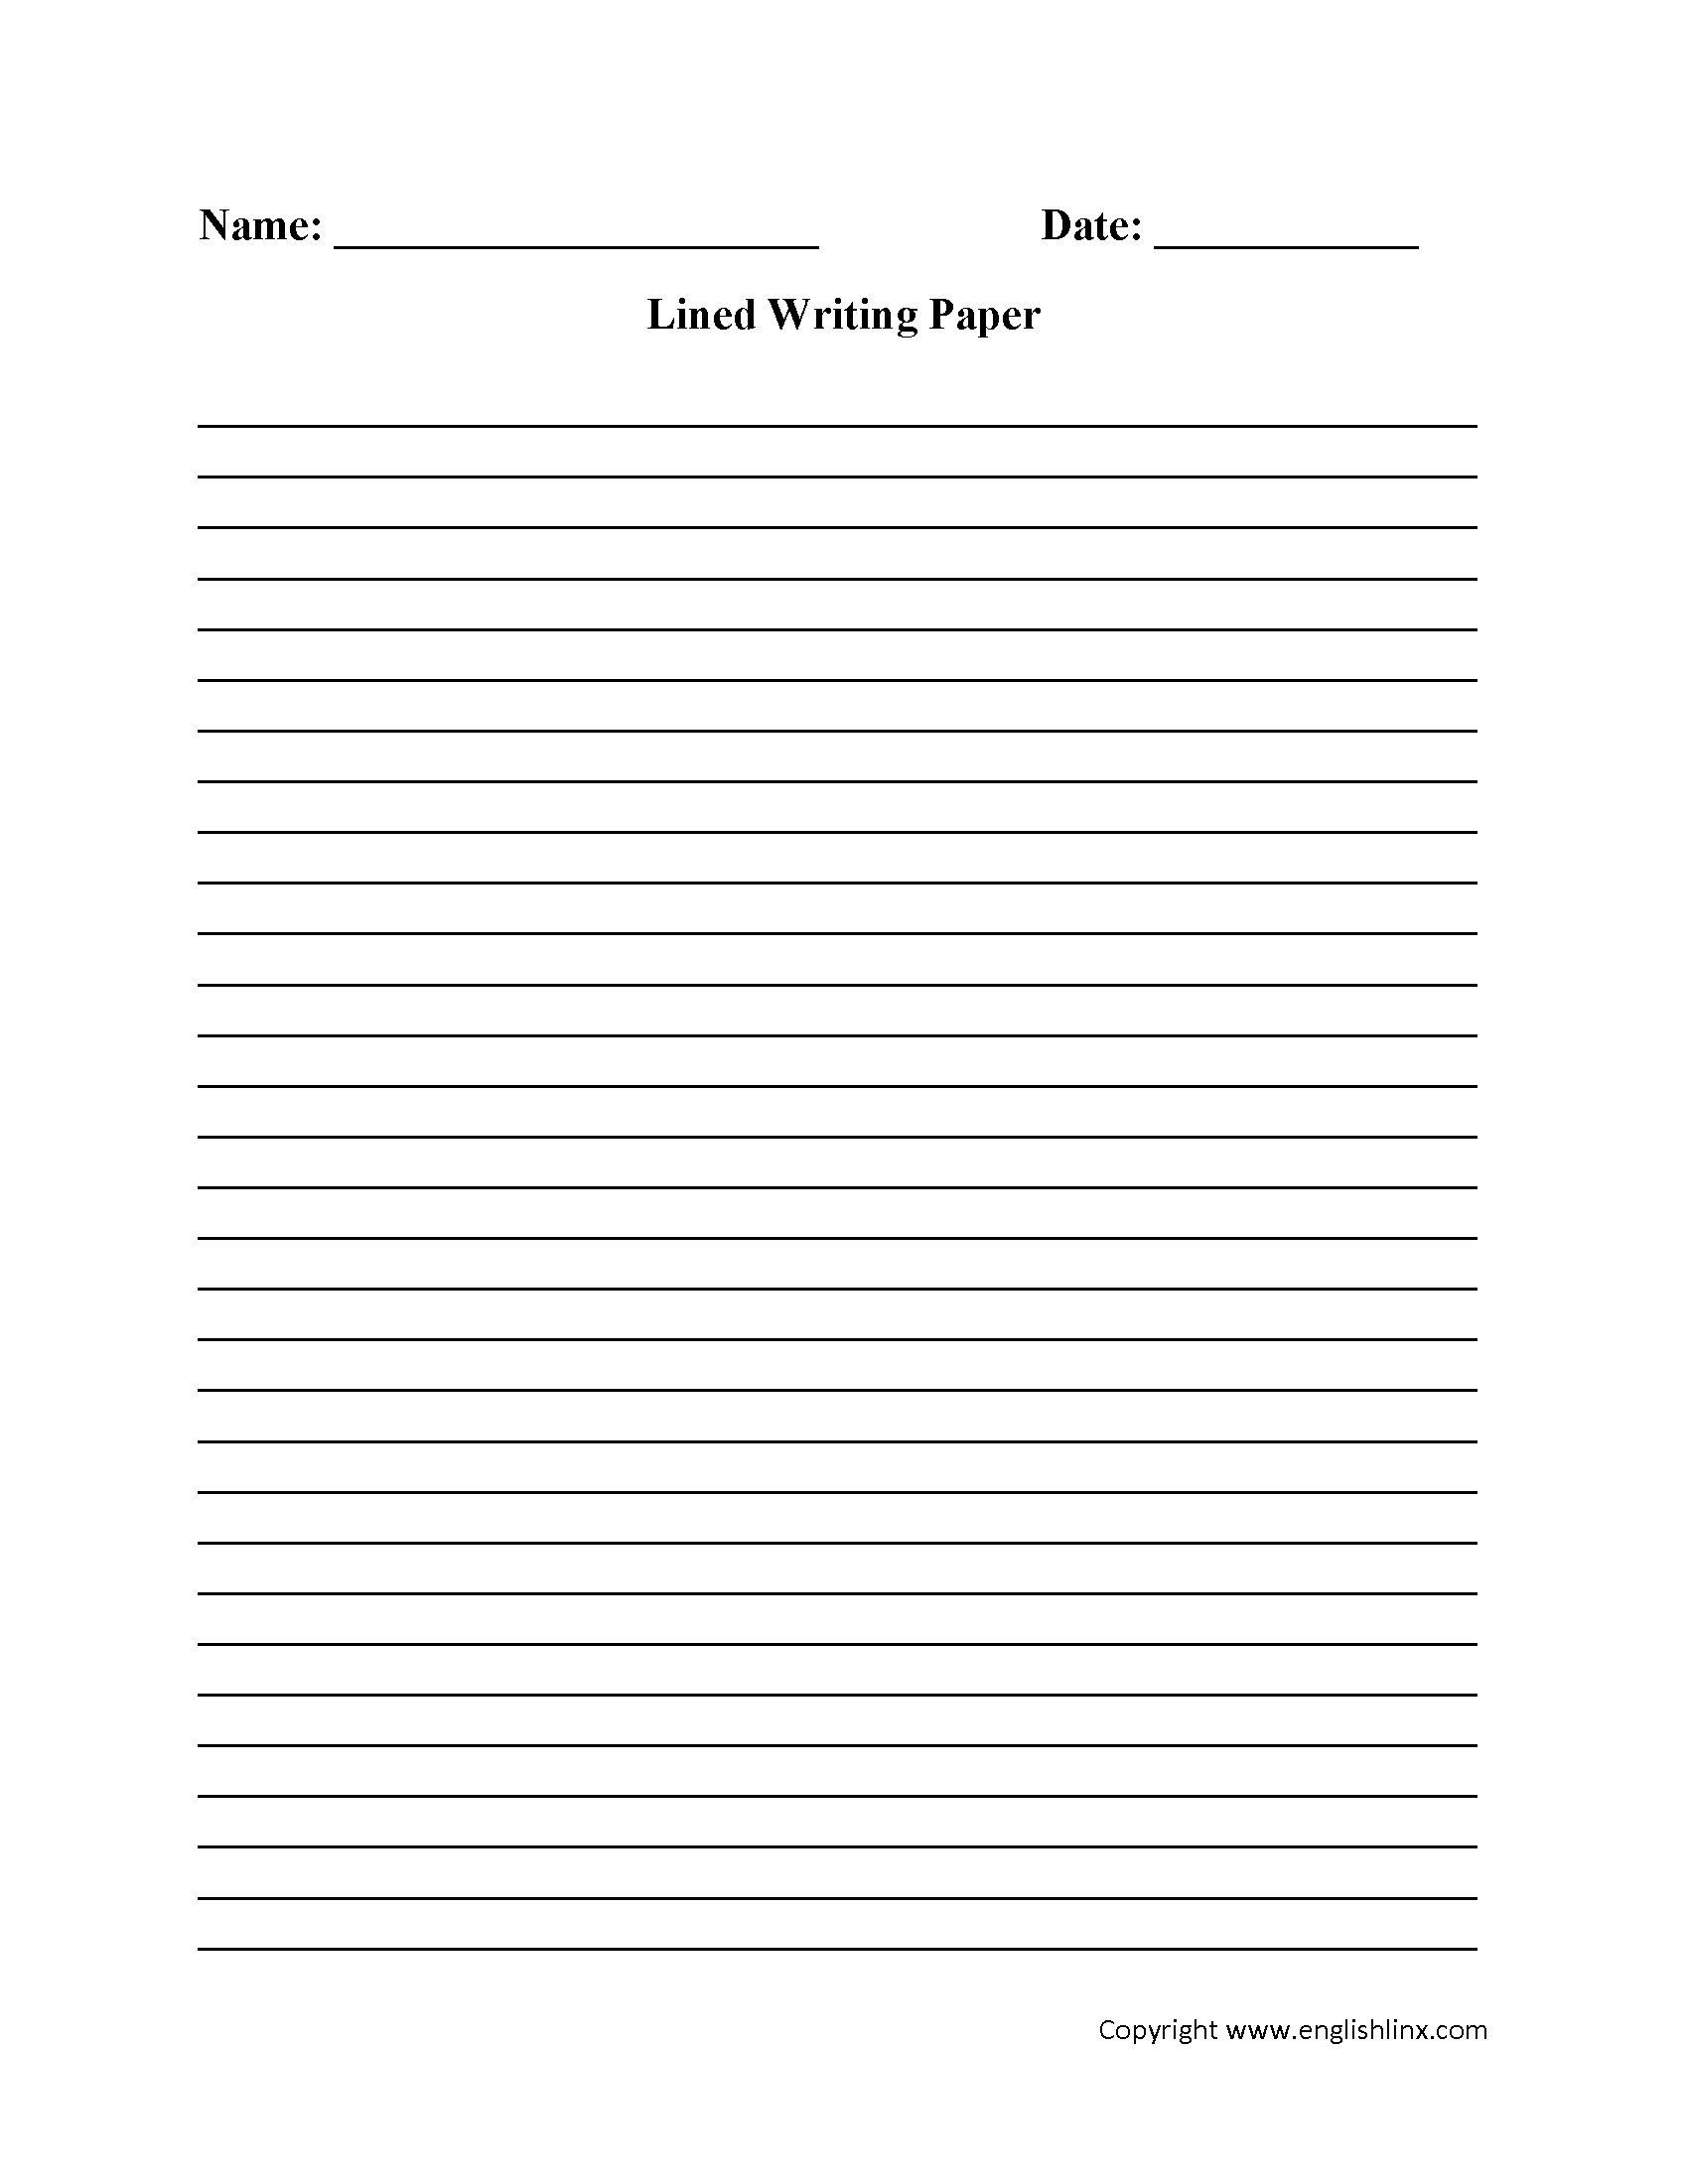 Writing Worksheets | Lined Writing Paper Worksheets - Free Printable Lined Writing Paper